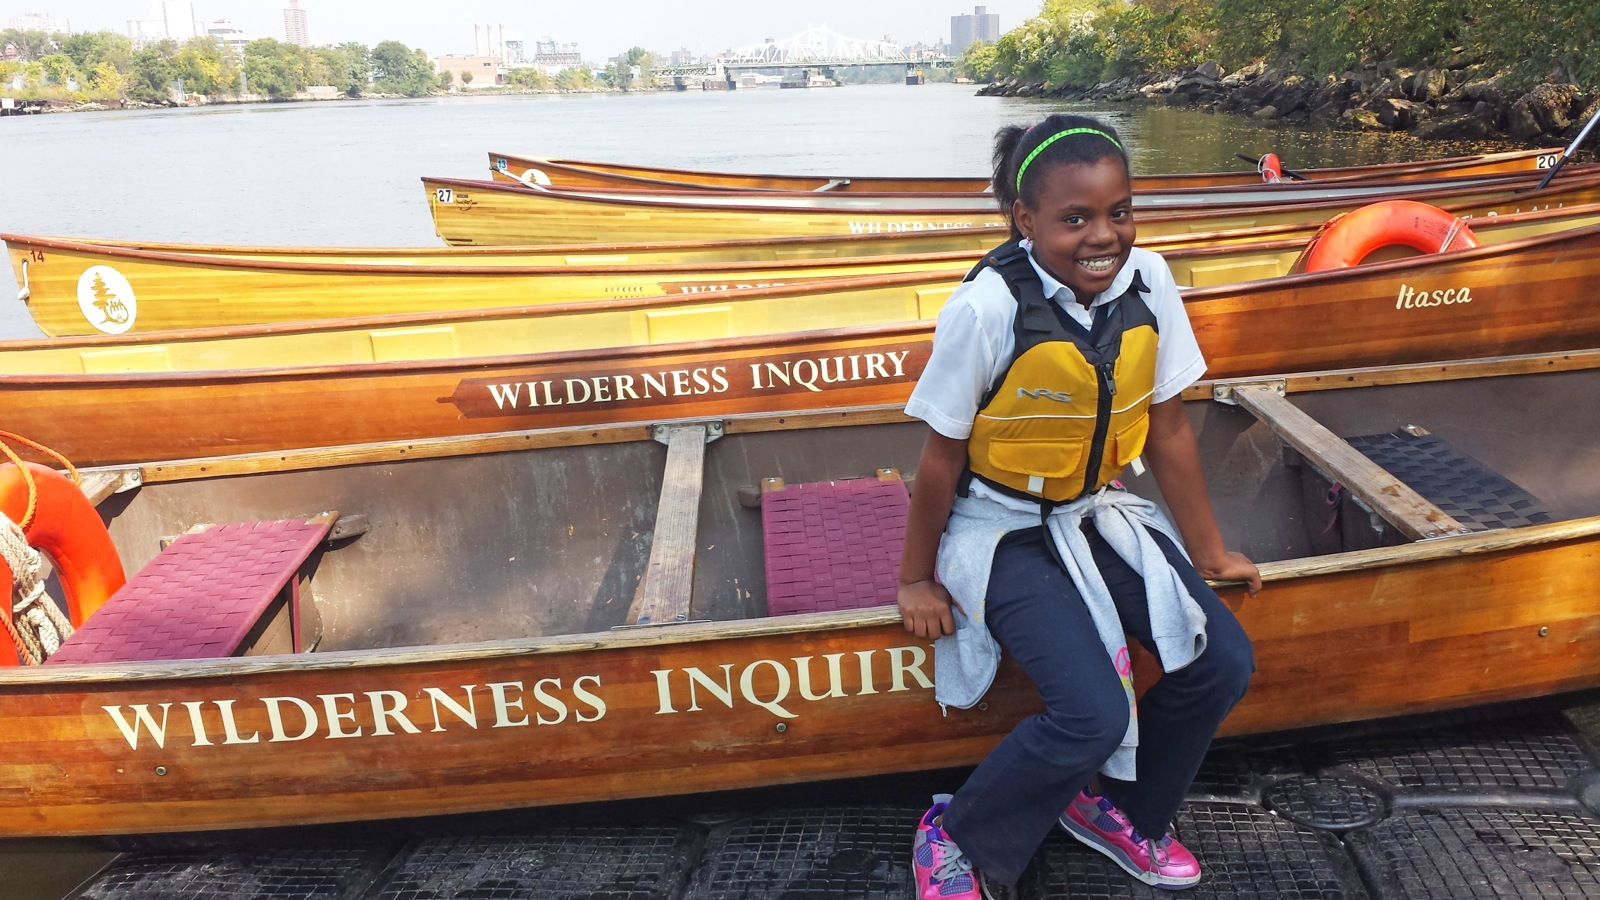 a girl sitting on the edge of a canoe at the docks smiling for the camera